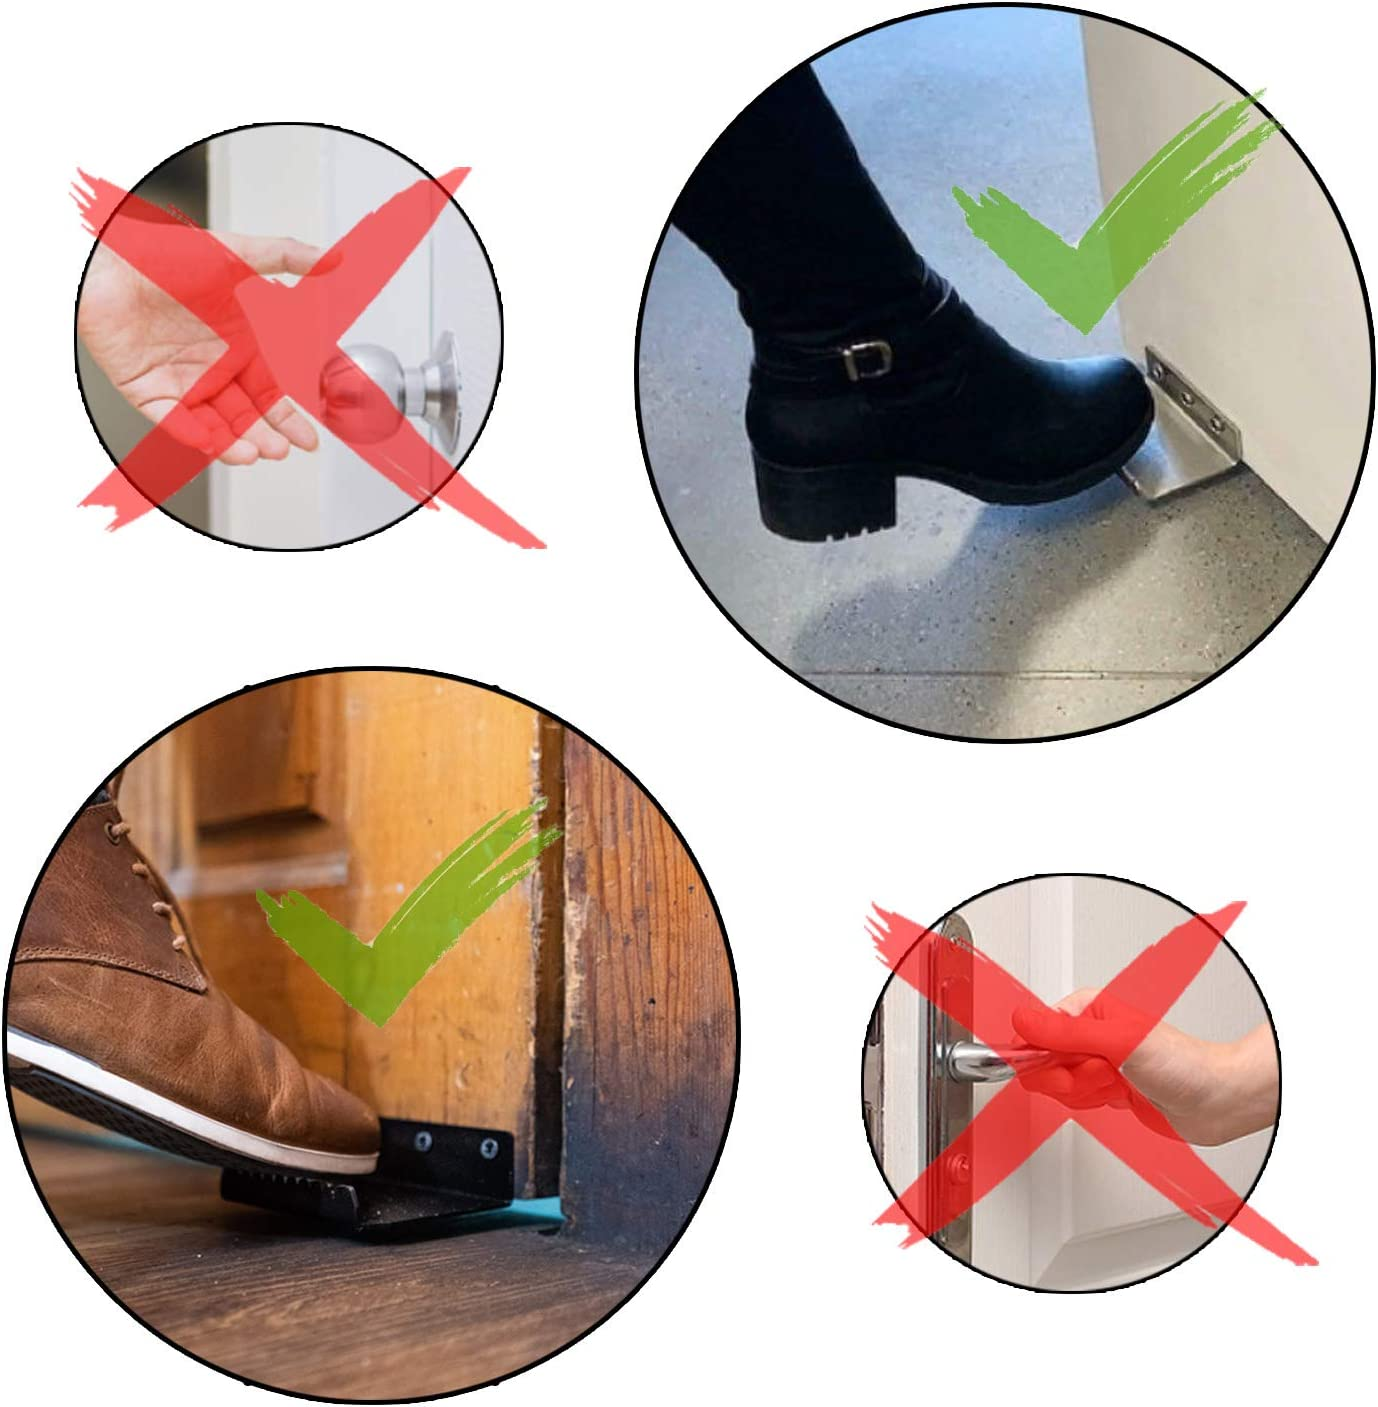 Koor Hands Free Foot Operated Door Opener Suitable for Bathroom Doors and Drawers 2 Pack Comes with Free Door Sticker Sign Easy to Install Black Sturdy and Durable